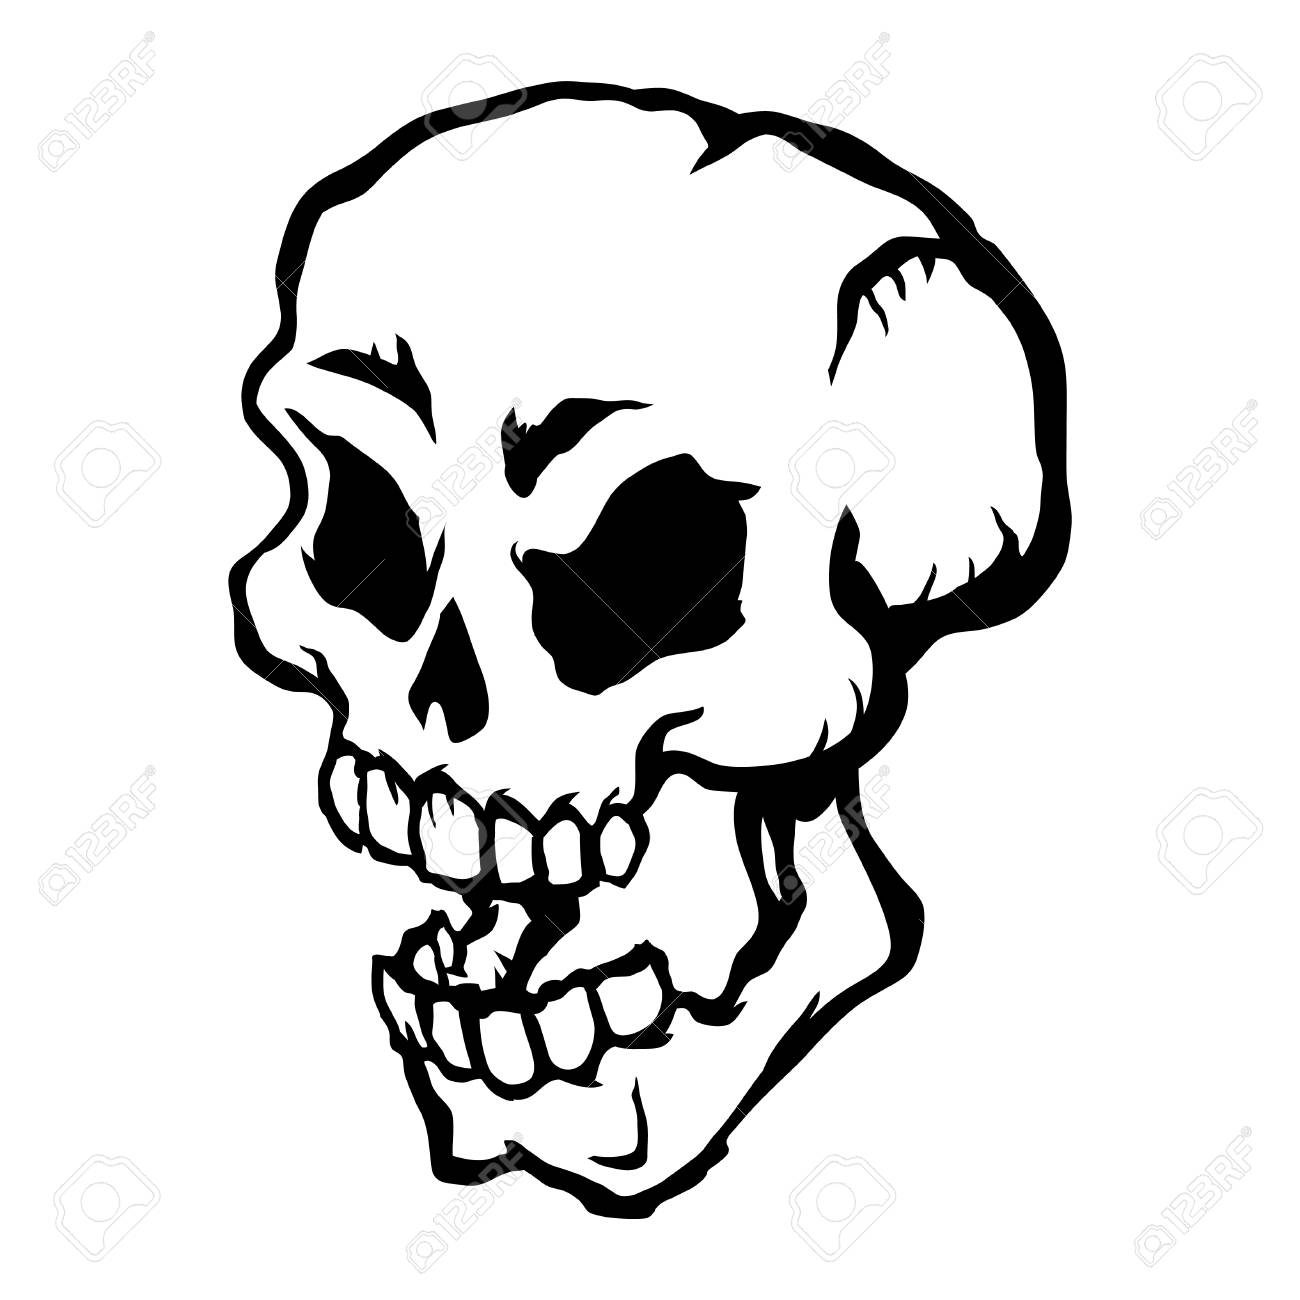 skull vector icon royalty free cliparts vectors and stock rh 123rf com free skull vector art skull vector free for commercial use